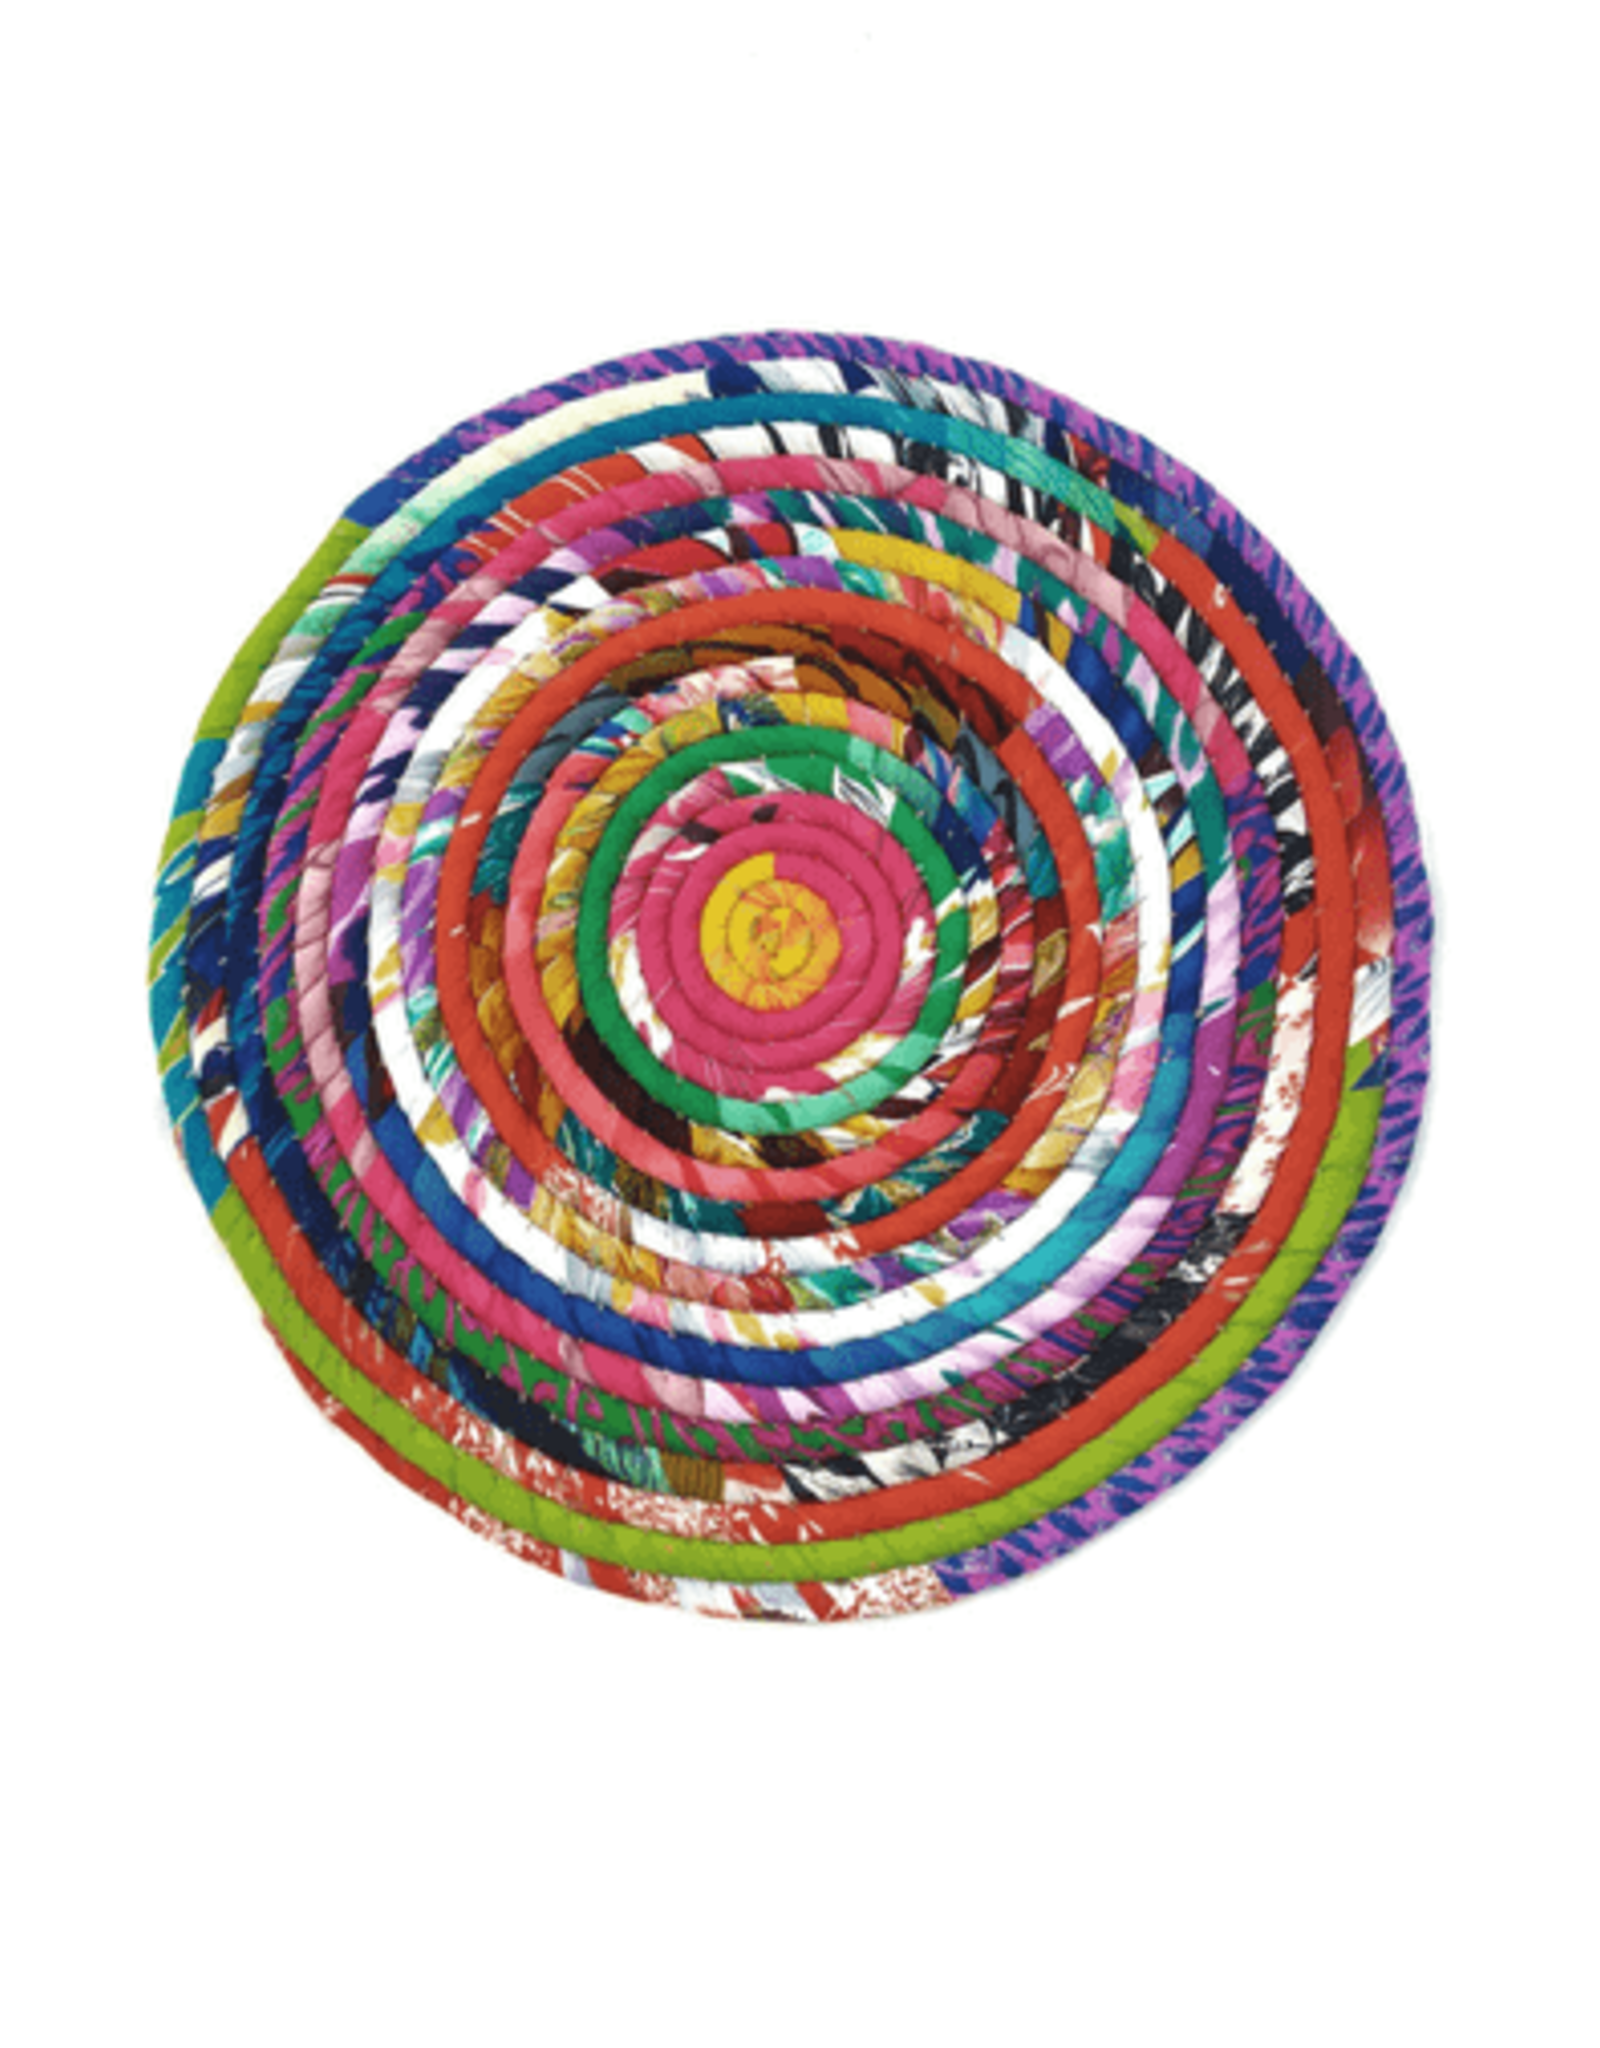 Silk Coil Placemat or Centerpiece